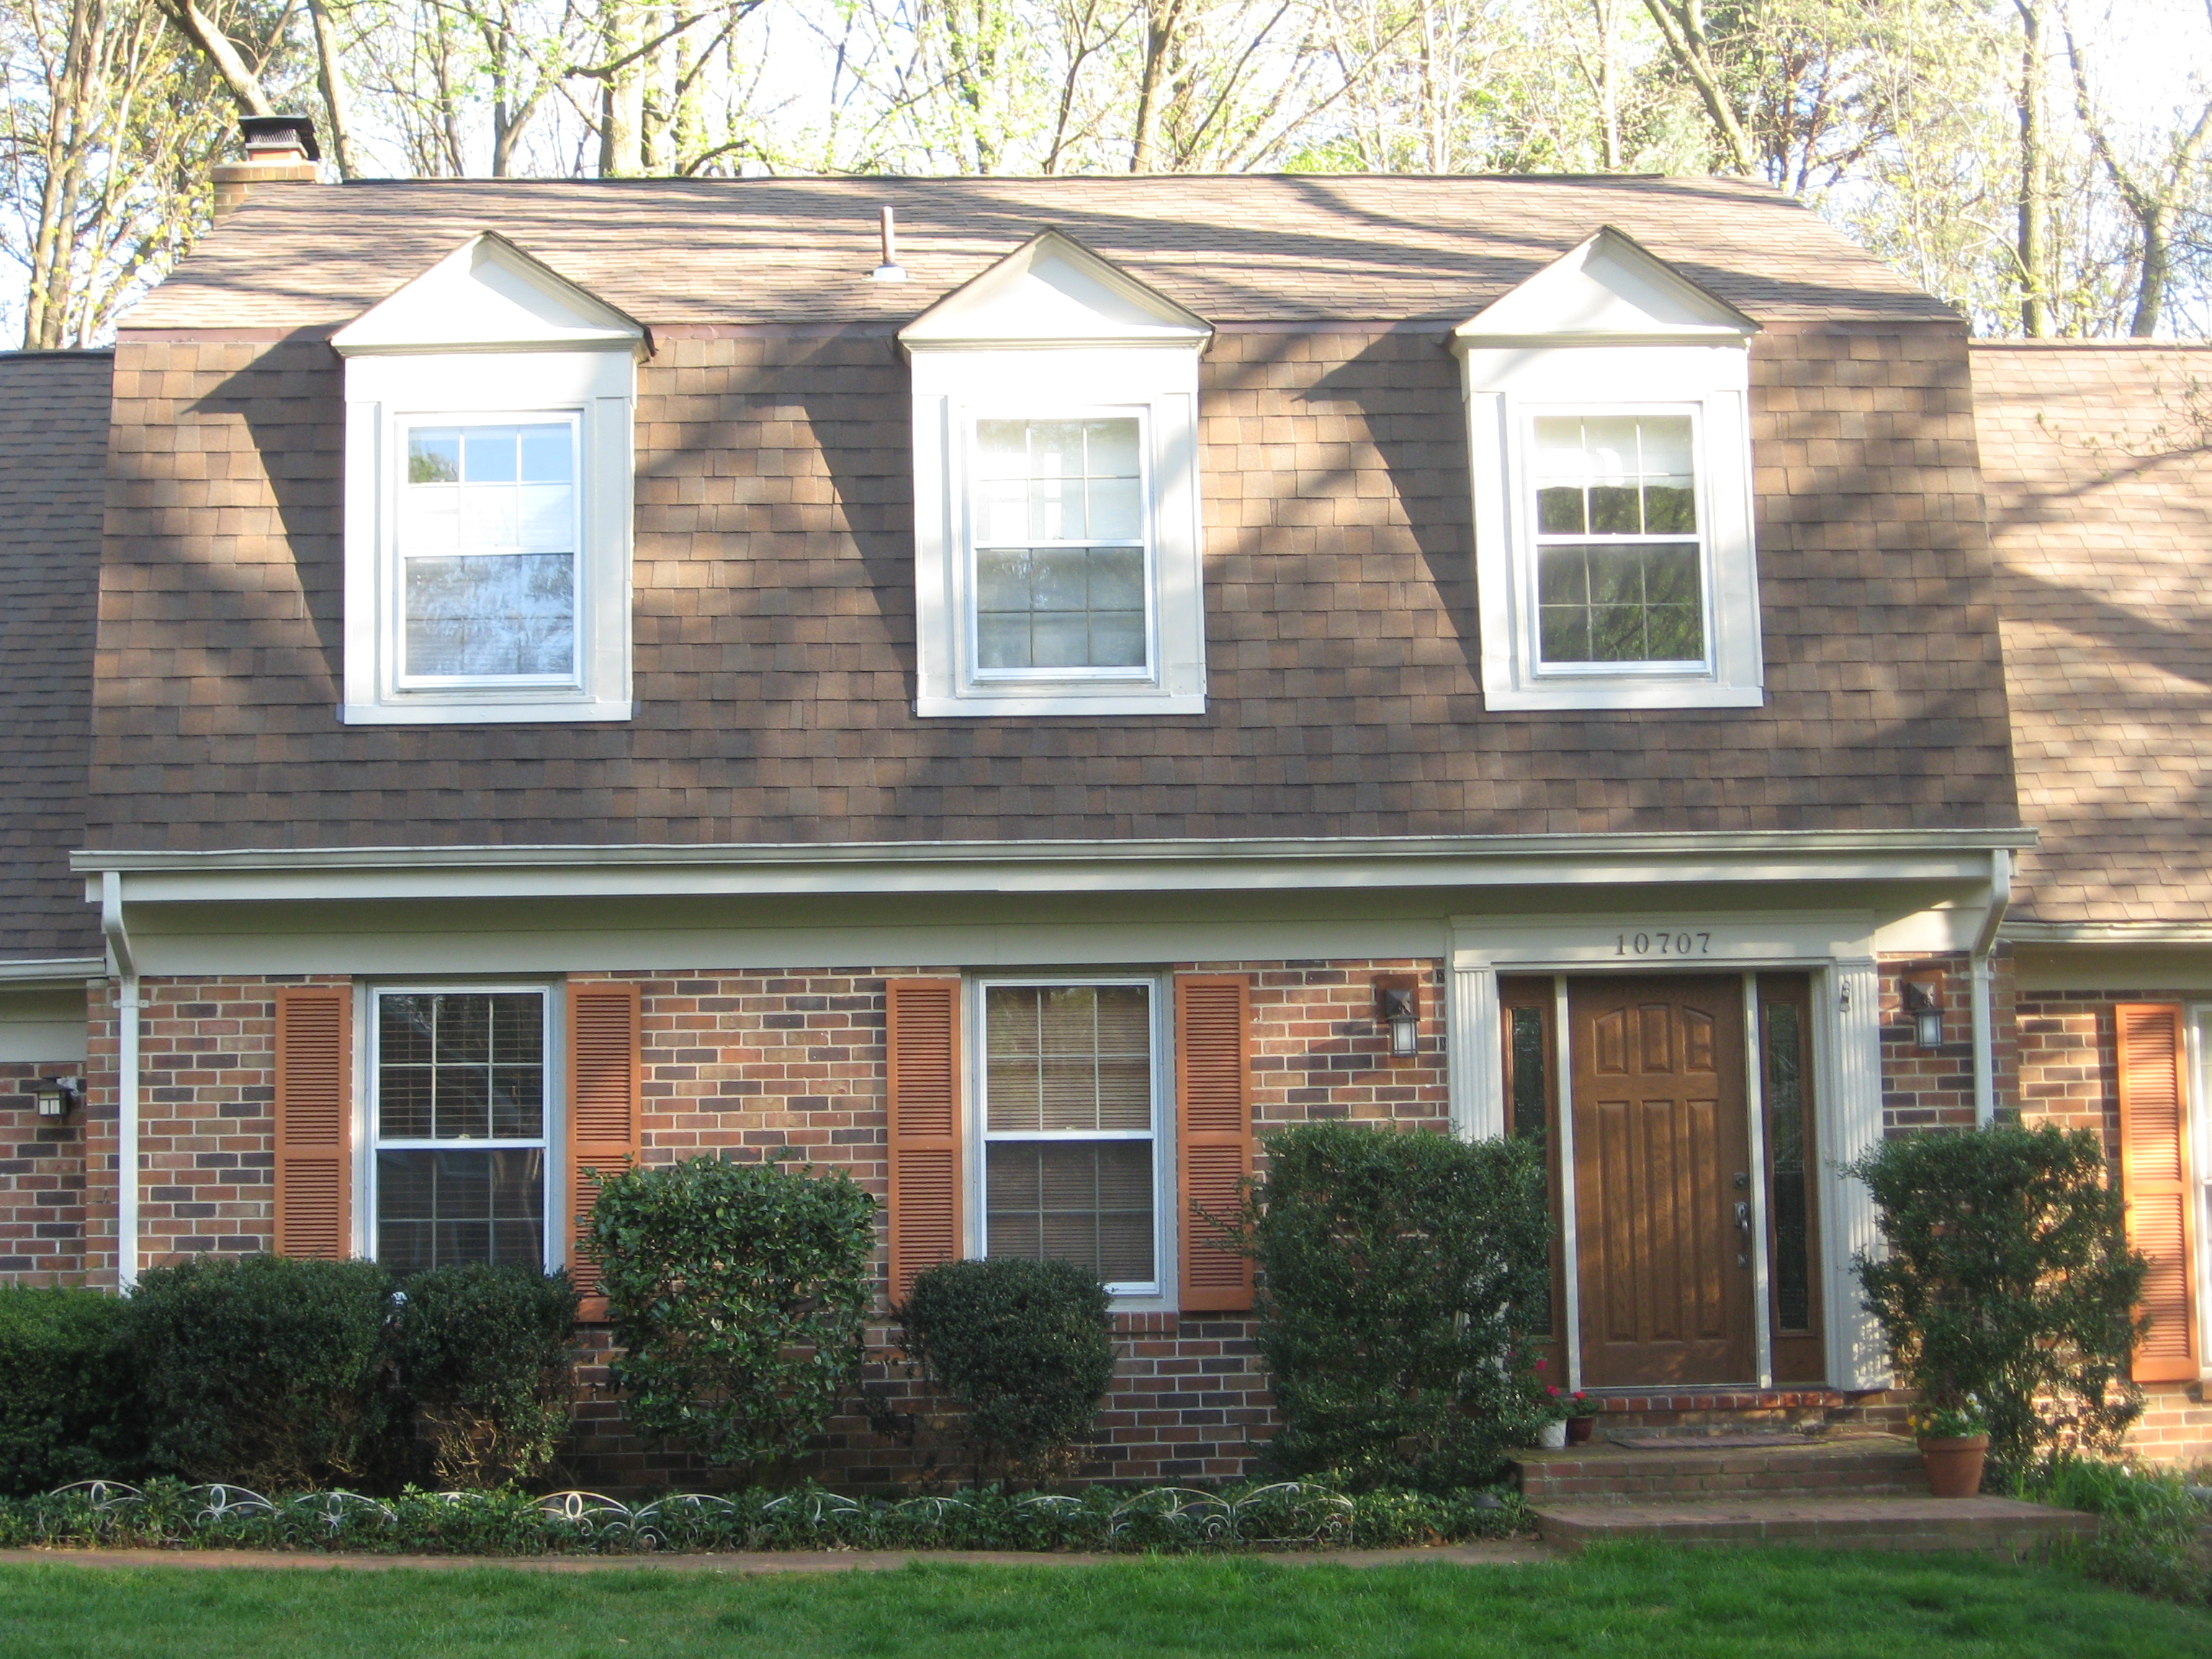 Luhrman Roof Sunshine Contracting